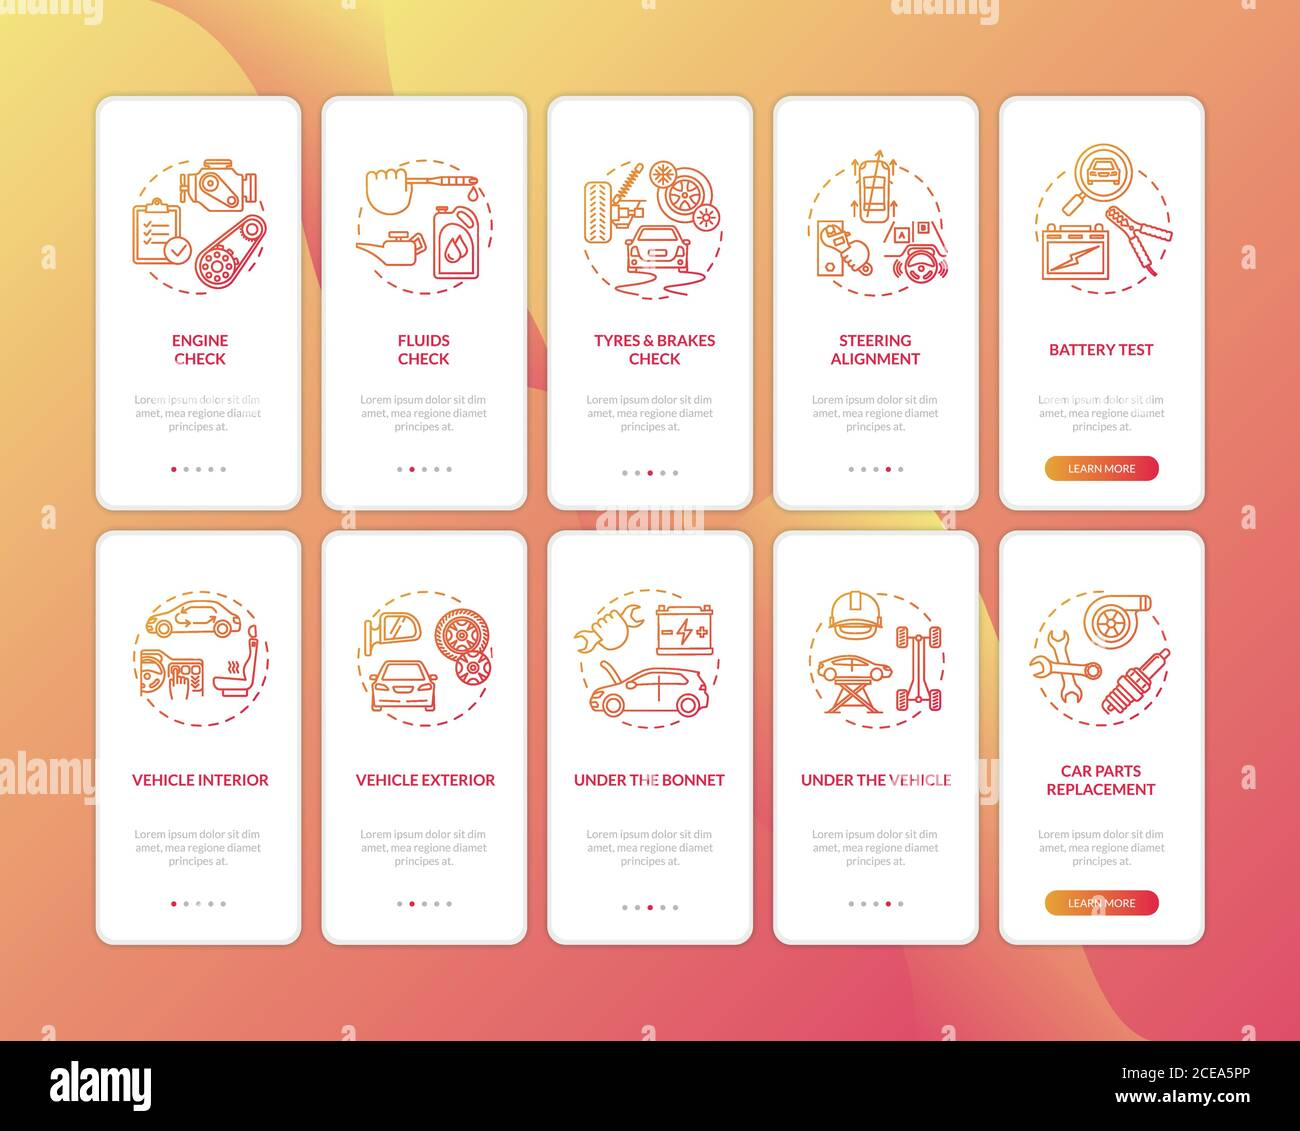 Auto Repair Onboarding Mobile App Page Screen With Concepts Set Car Technician Service Automotive Exam Walkthrough 5 Steps Graphic Instructions Ui Stock Vector Image Art Alamy